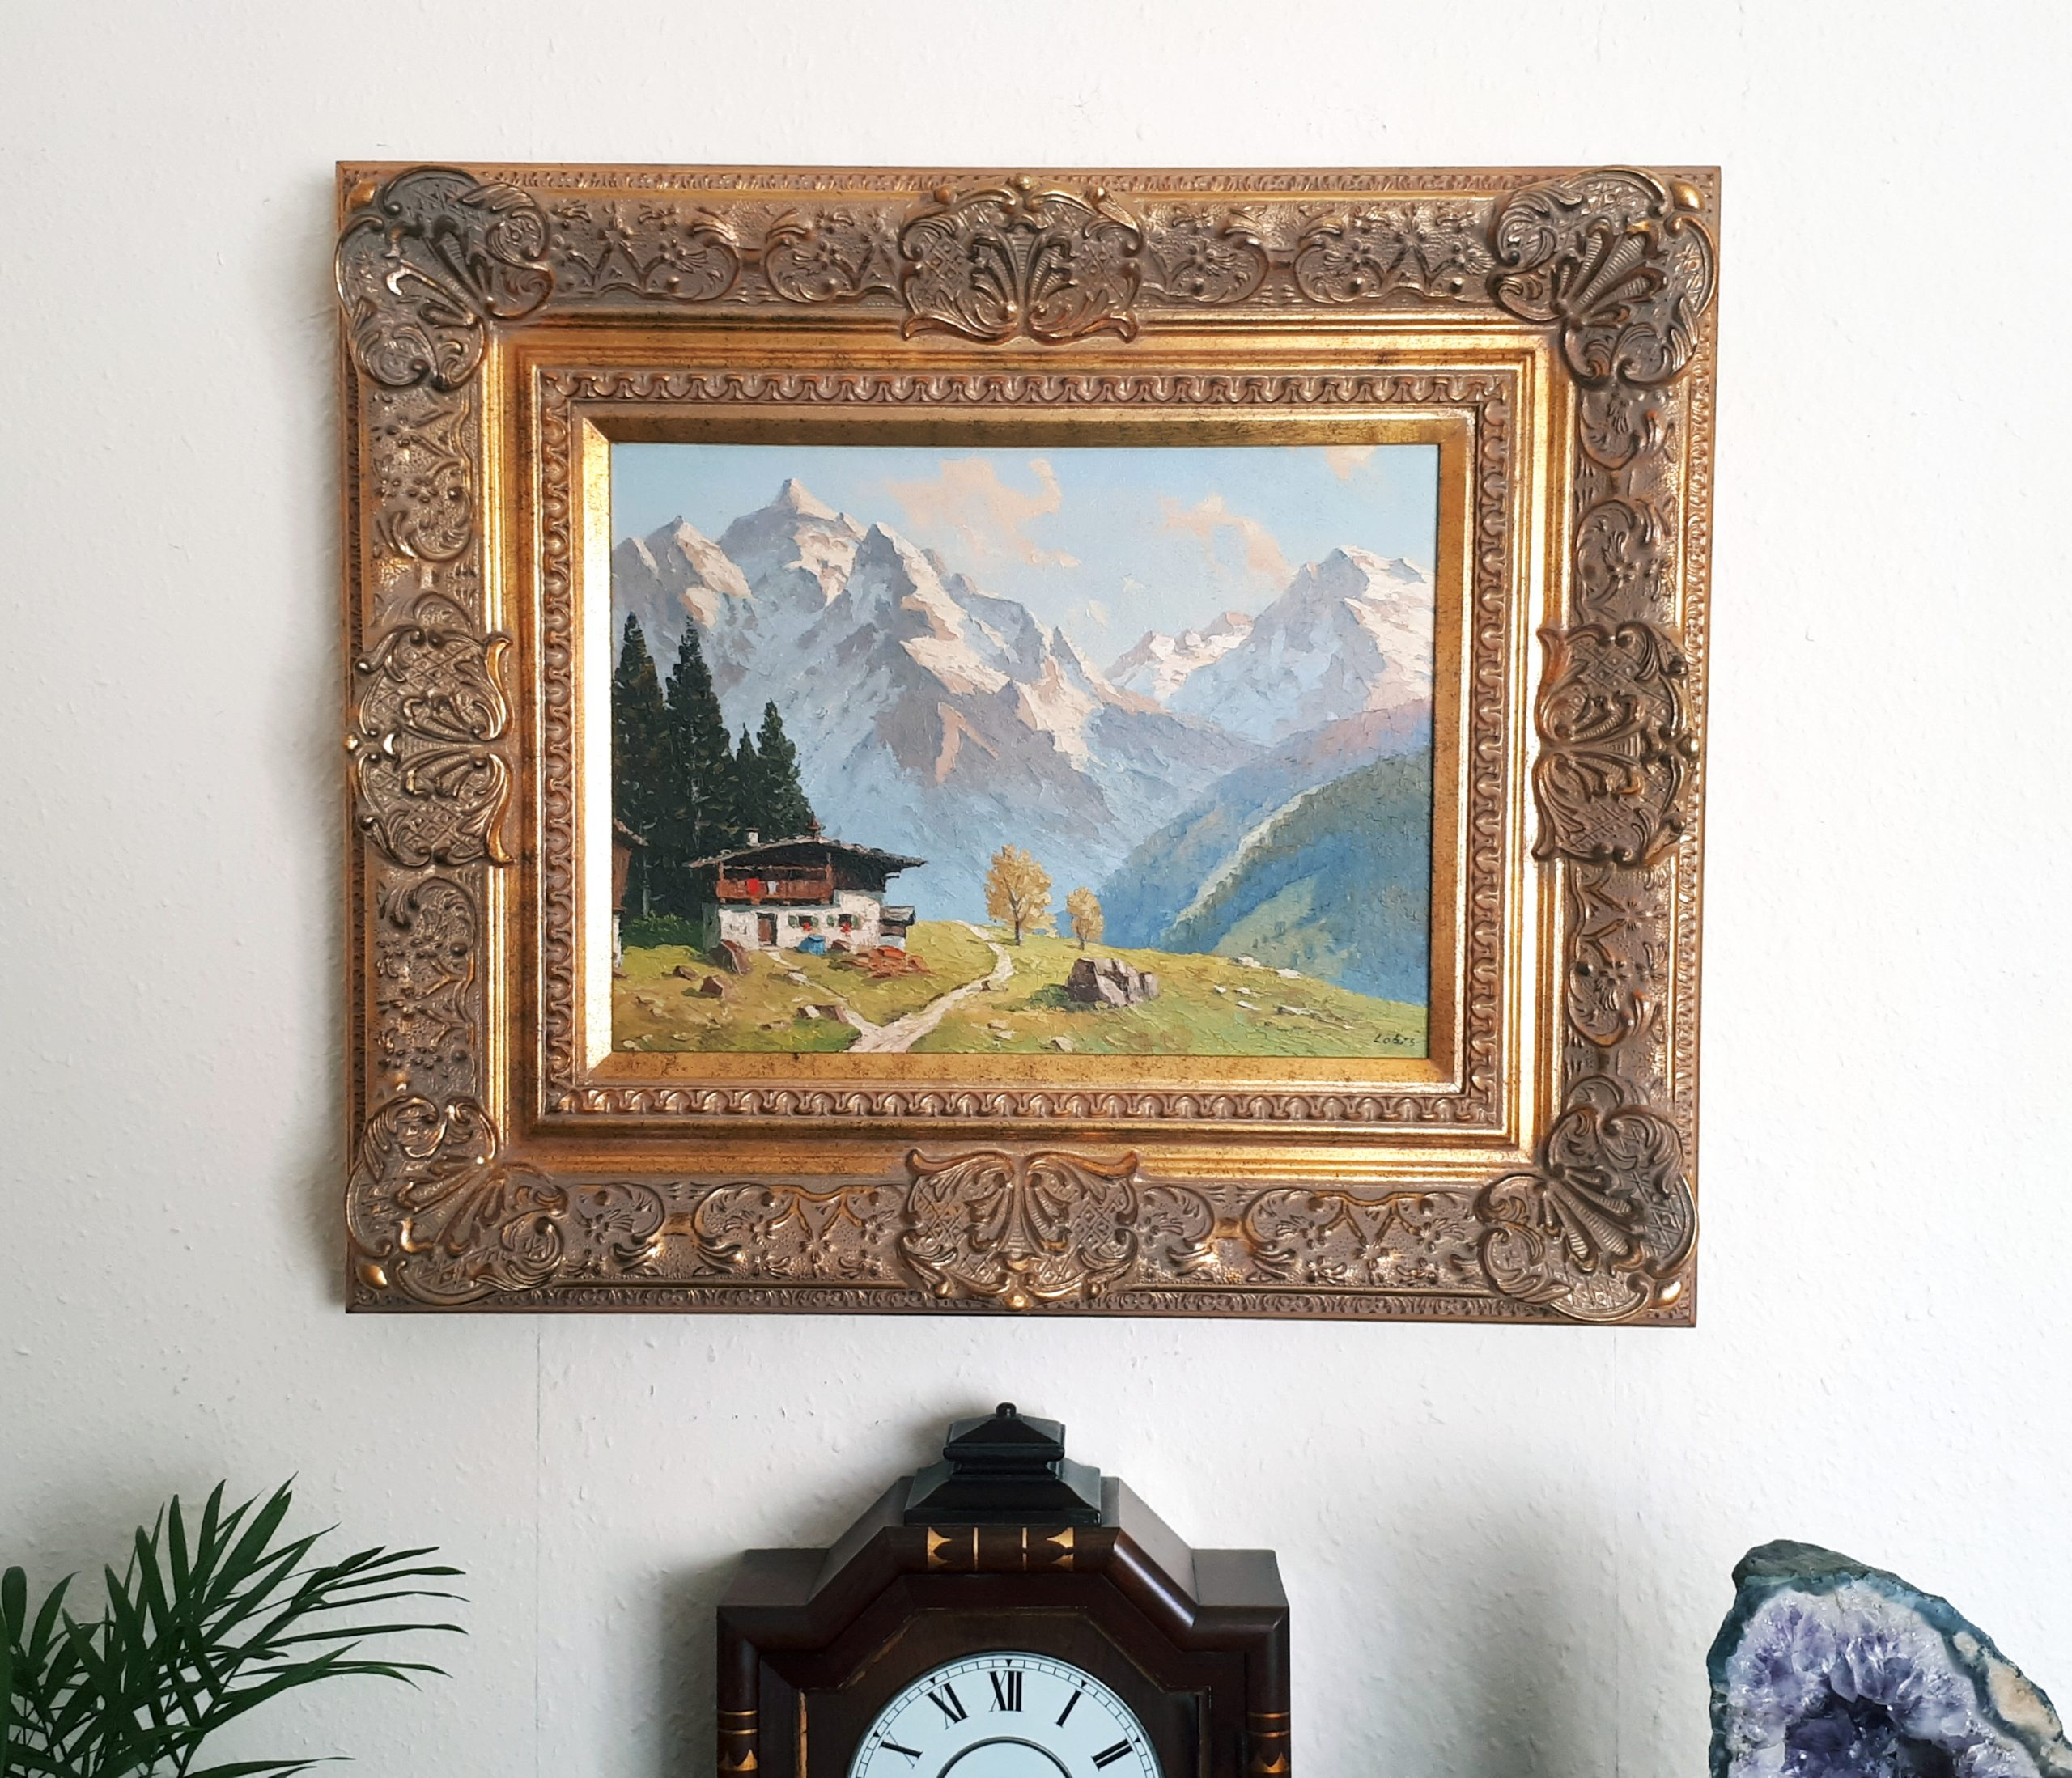 Framed Lobis painting